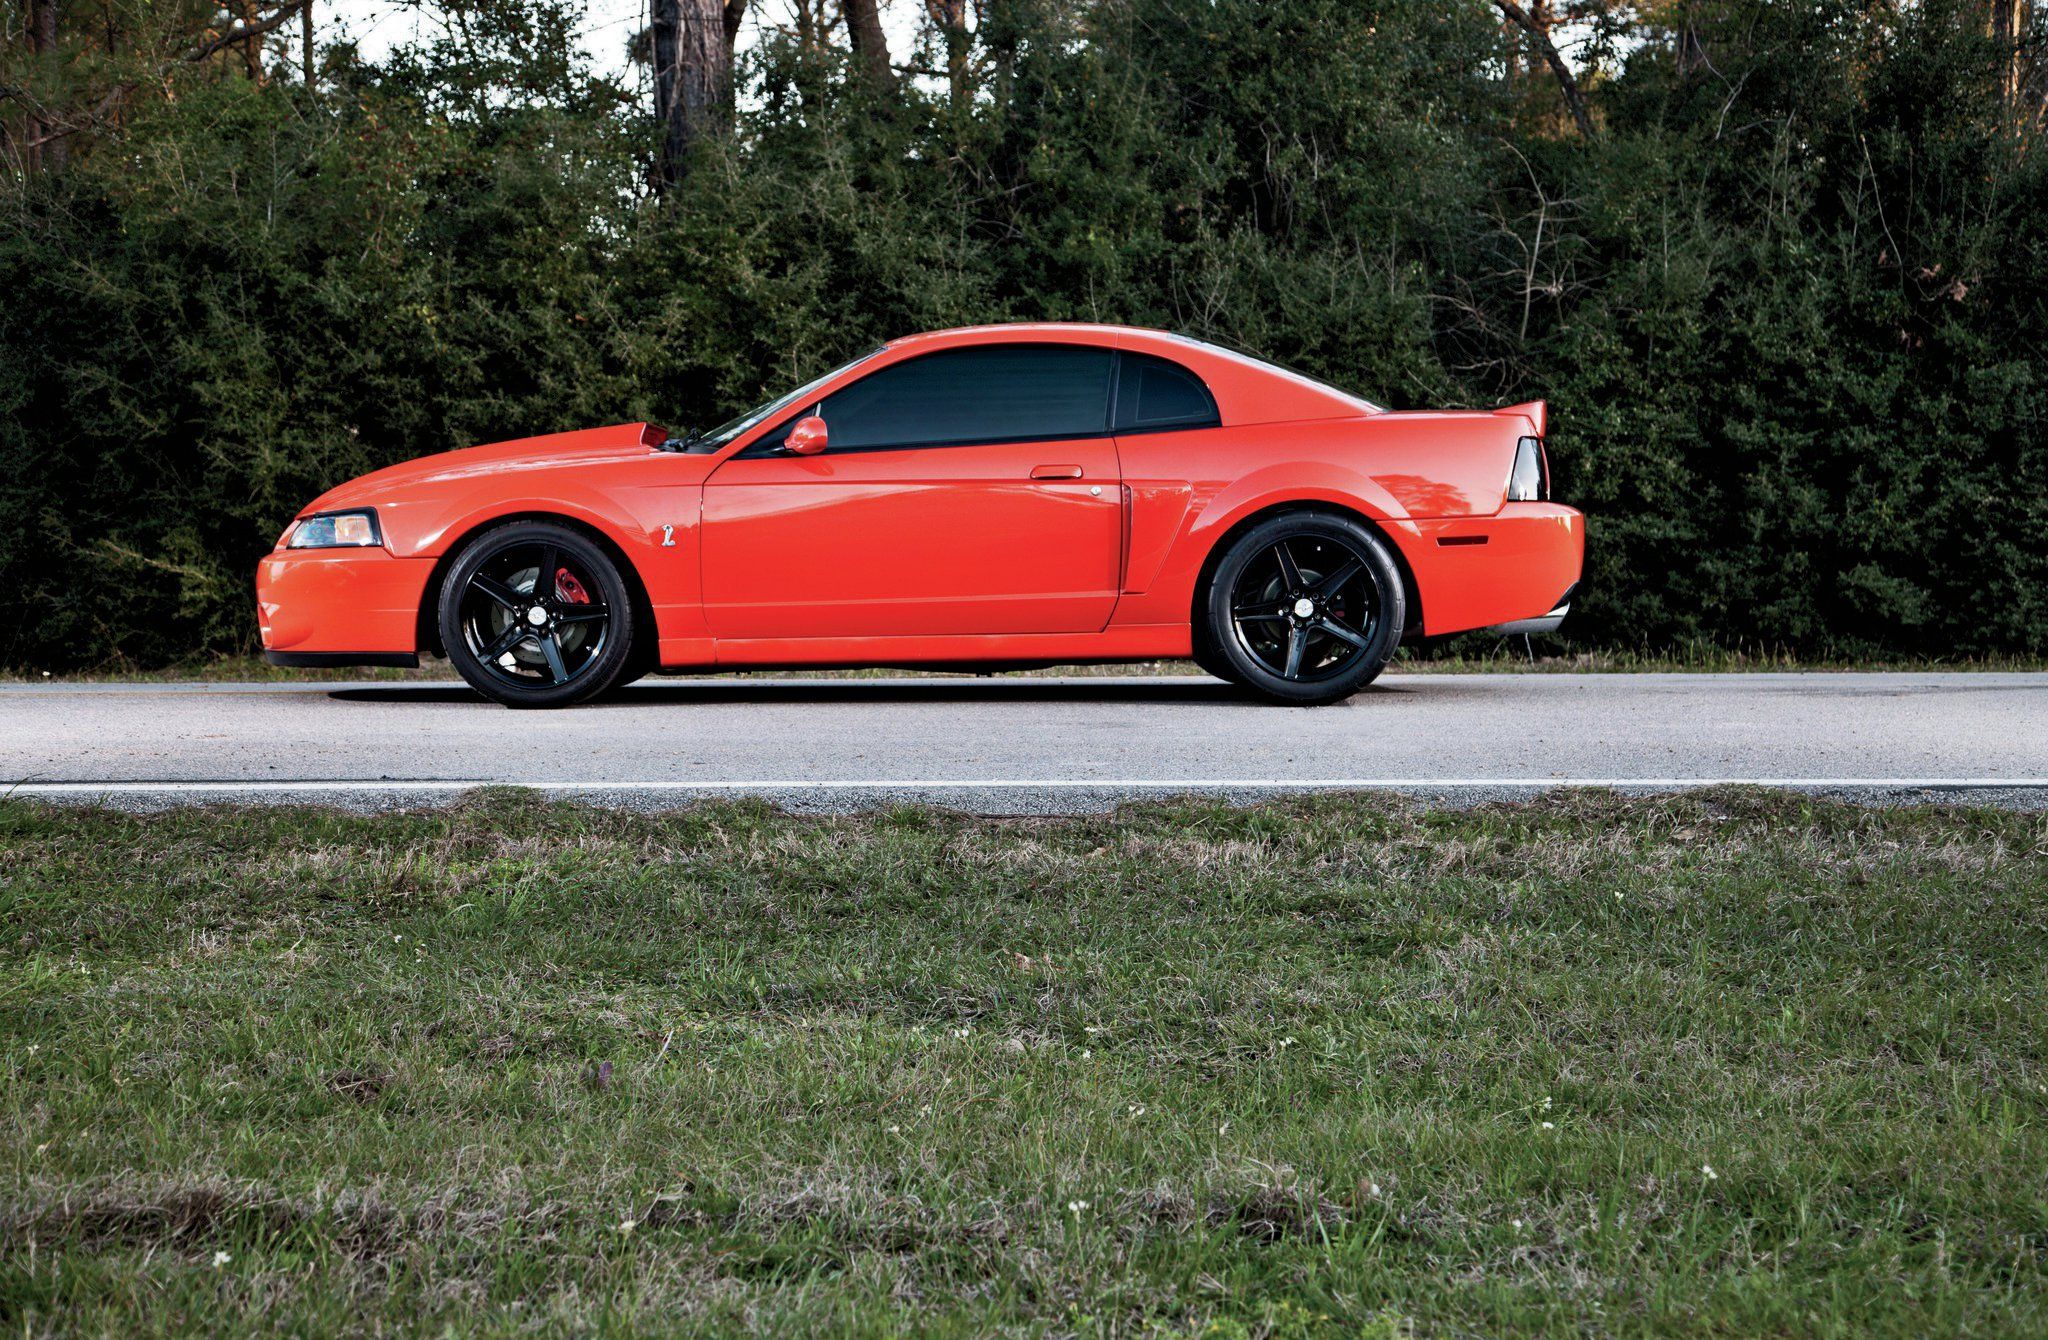 2004 Ford Mustang Cobra Drivers Side View